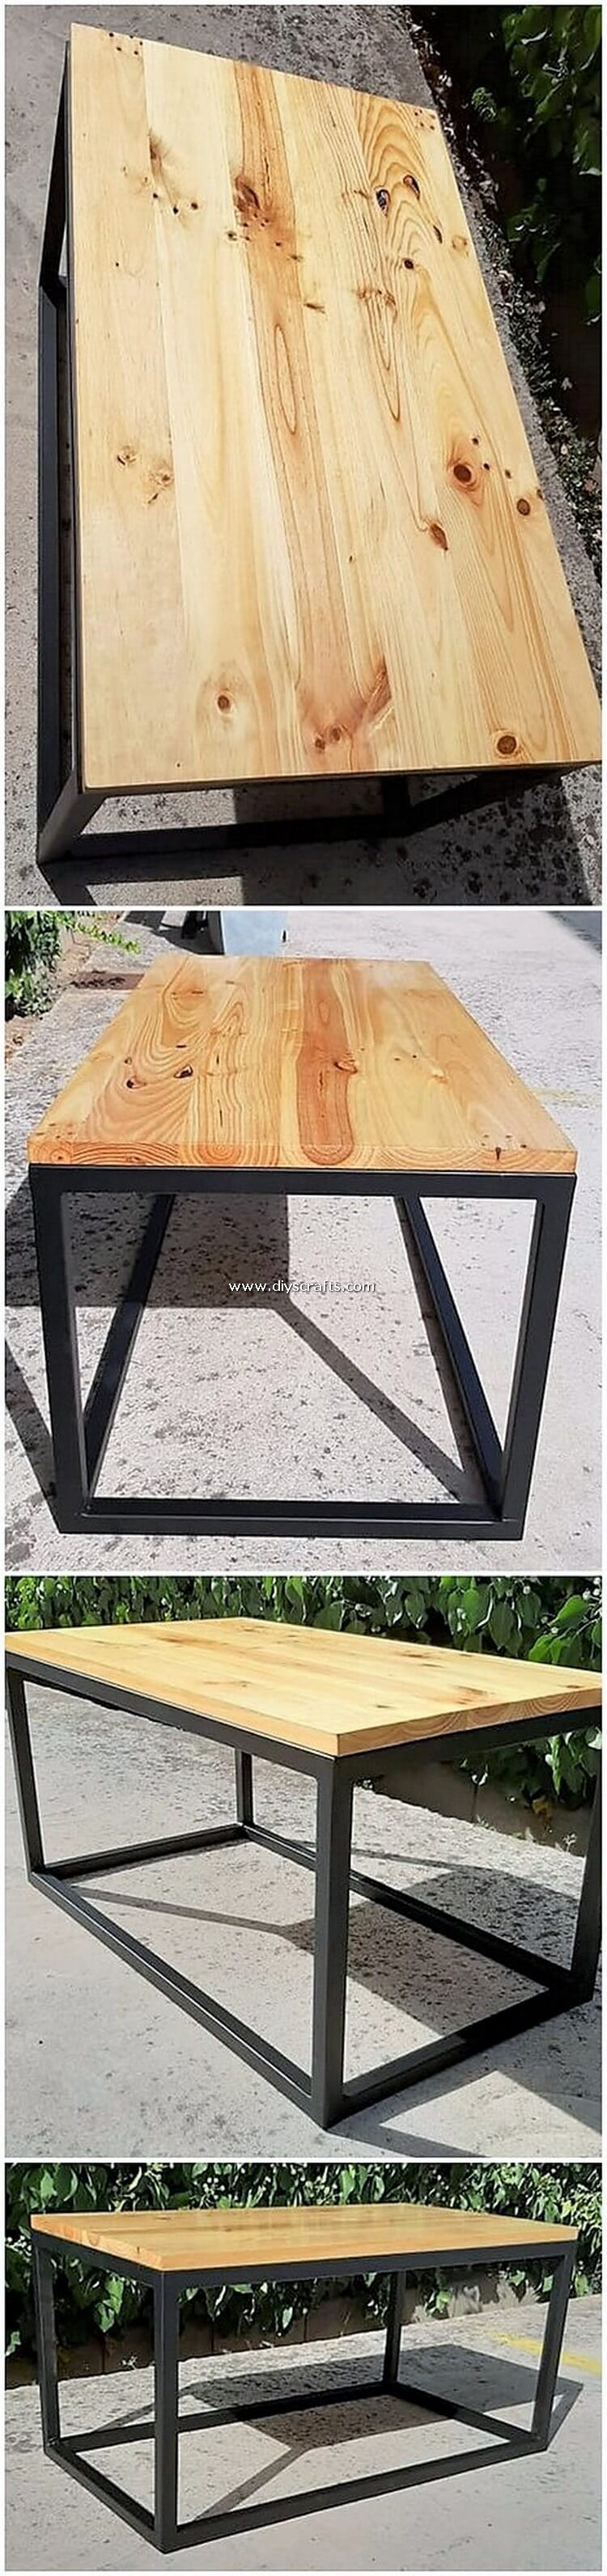 Pallet-Table-3